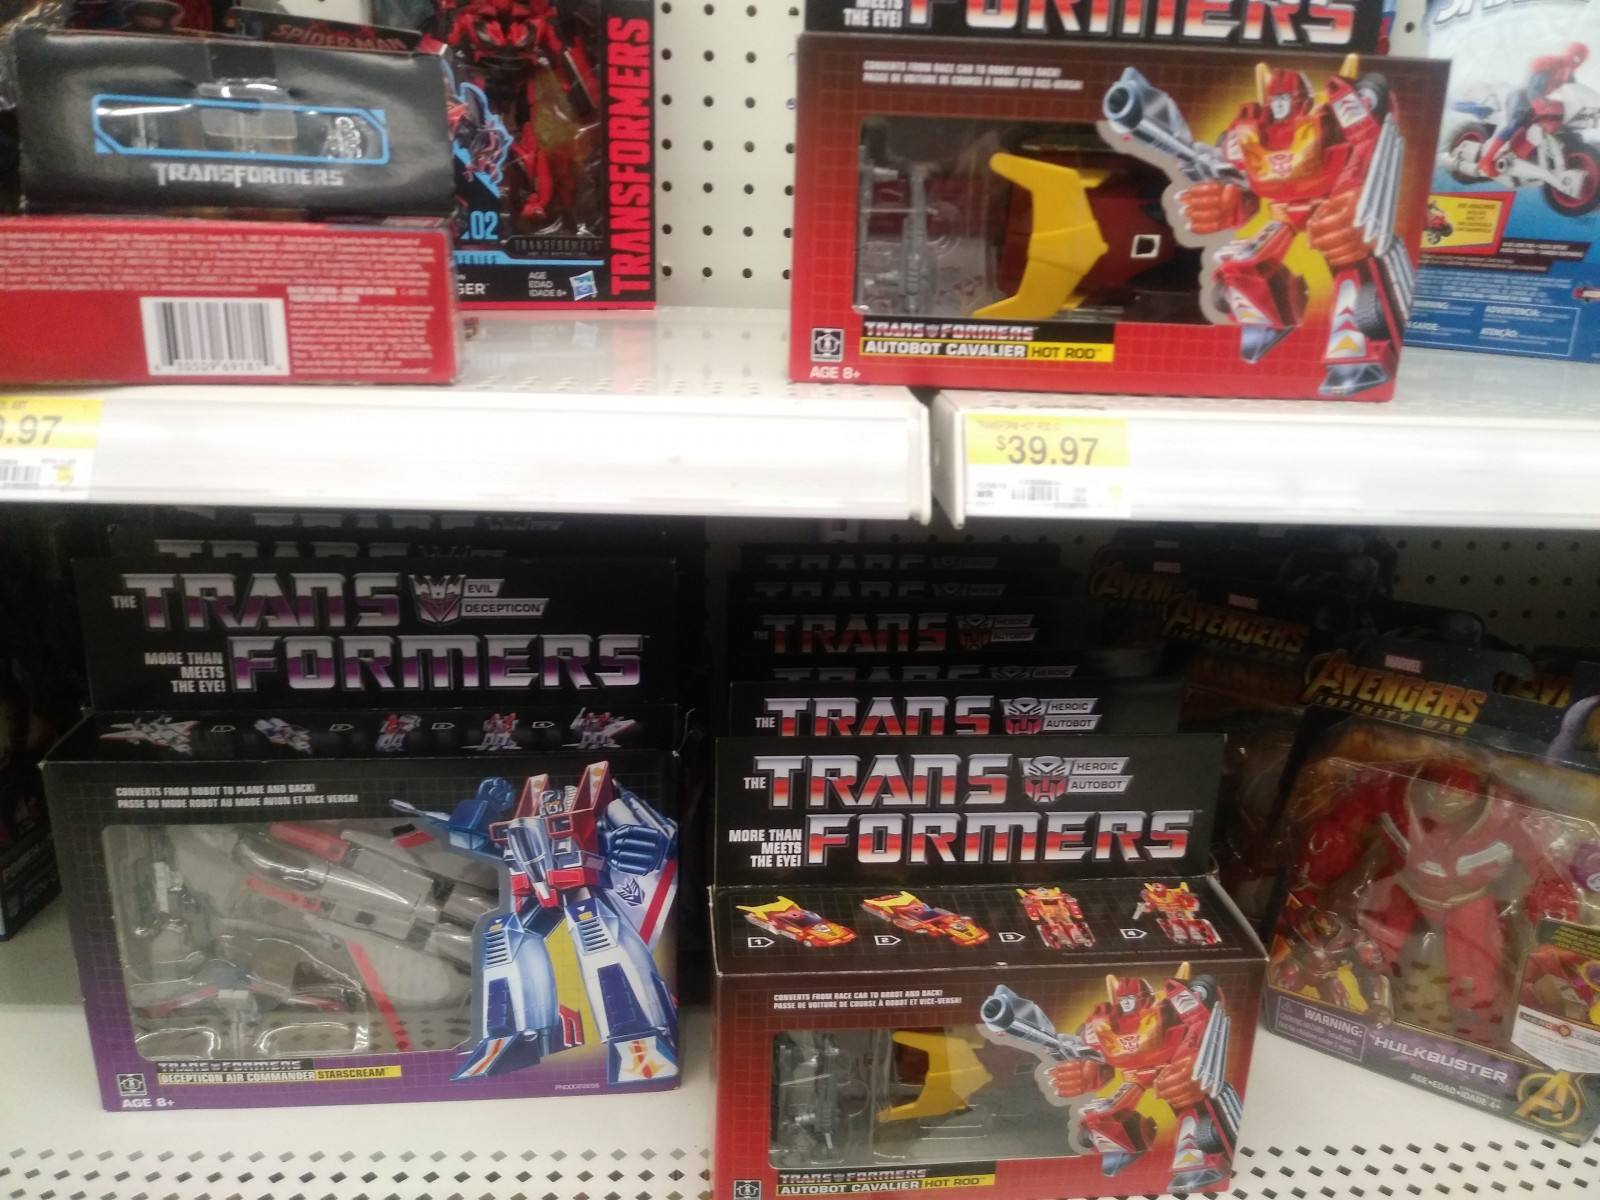 Transformers News: Why I am Thrilled by the Heavy G1 Influence in Upcoming Toys from Hasbro